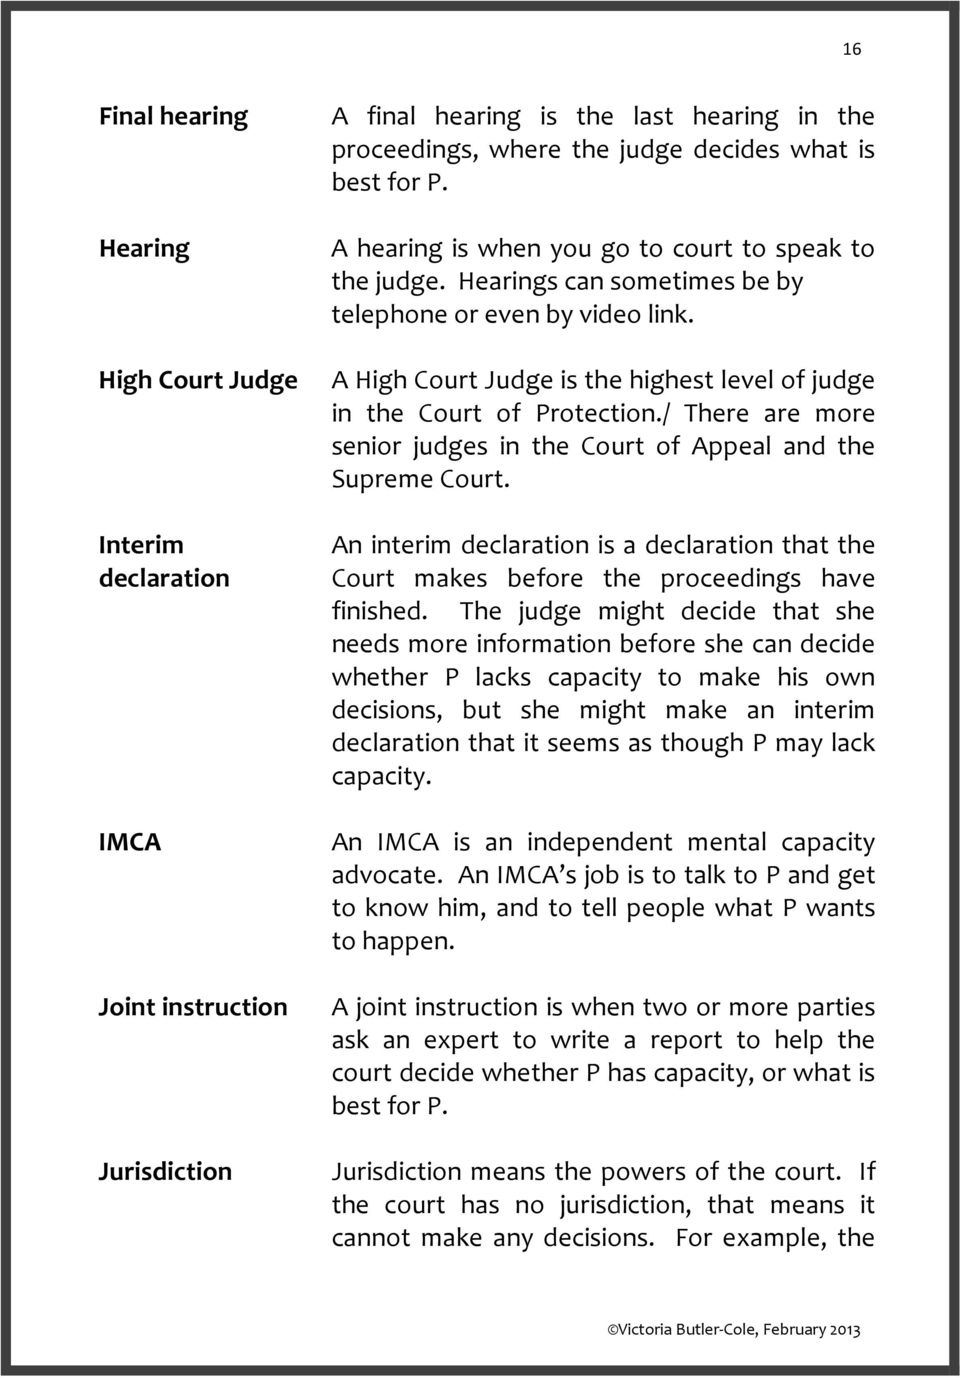 / There are more senior judges in the Court of Appeal and the Supreme Court. An interim declaration is a declaration that the Court makes before the proceedings have finished.